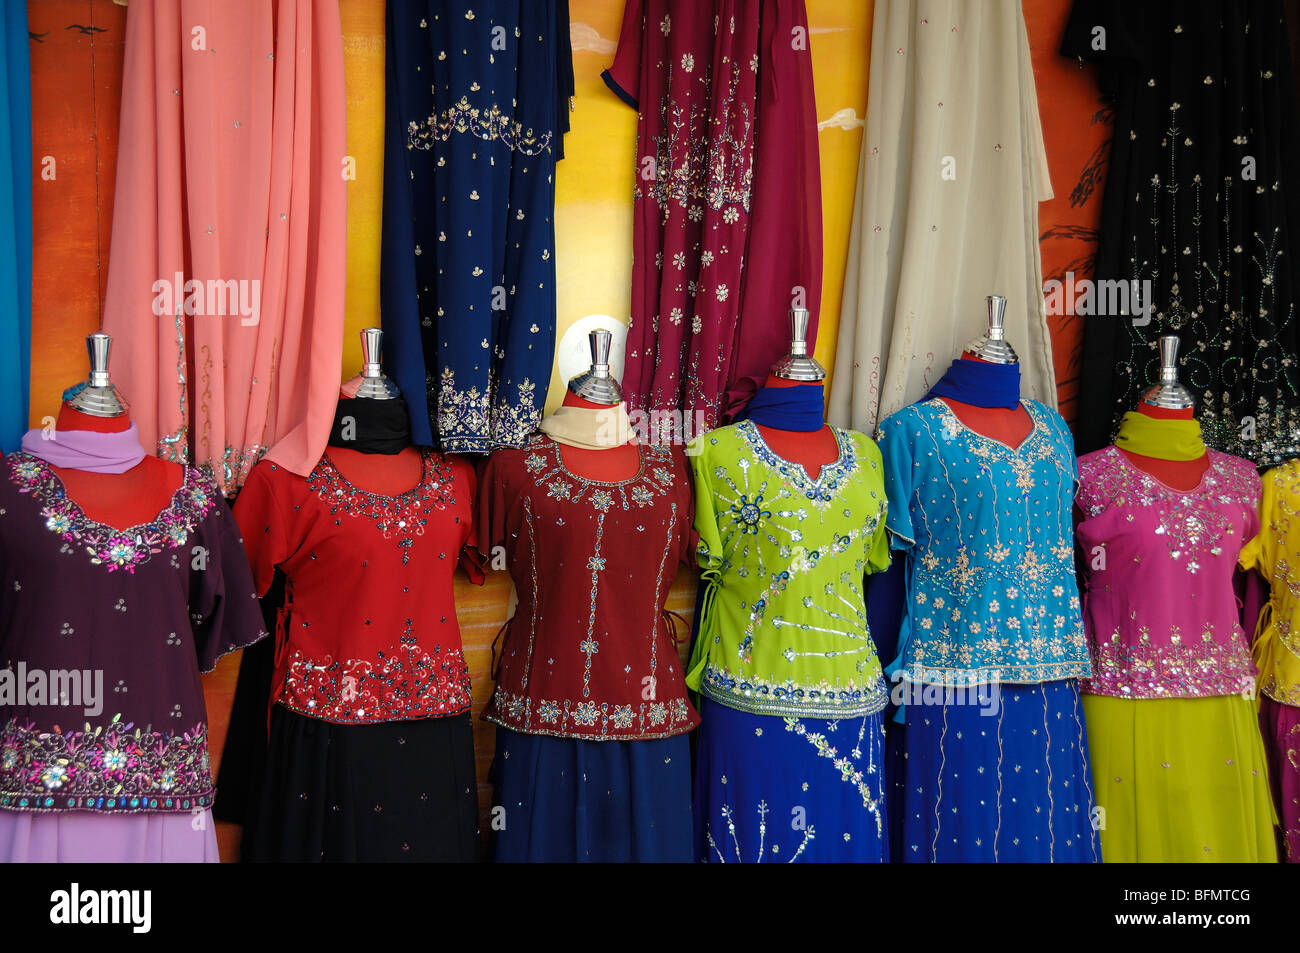 34a1d1bbac Display of Indian Clothes Fashions for Sale in Shop or Store in Little India,  Singapore